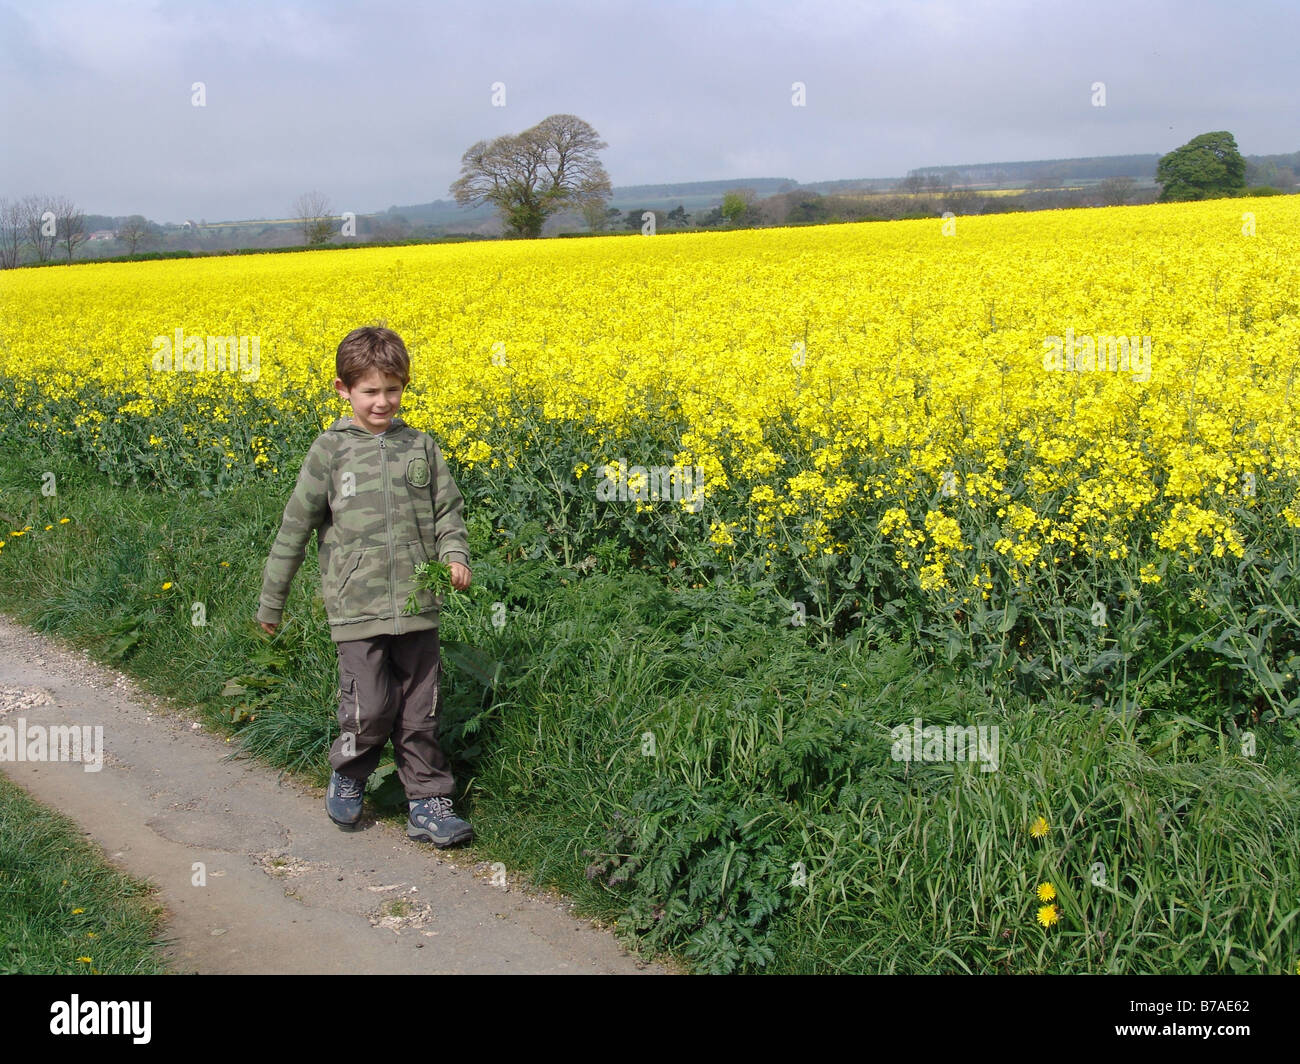 A boy walking along a rapeseed field in North Yorkshire, england - Stock Image